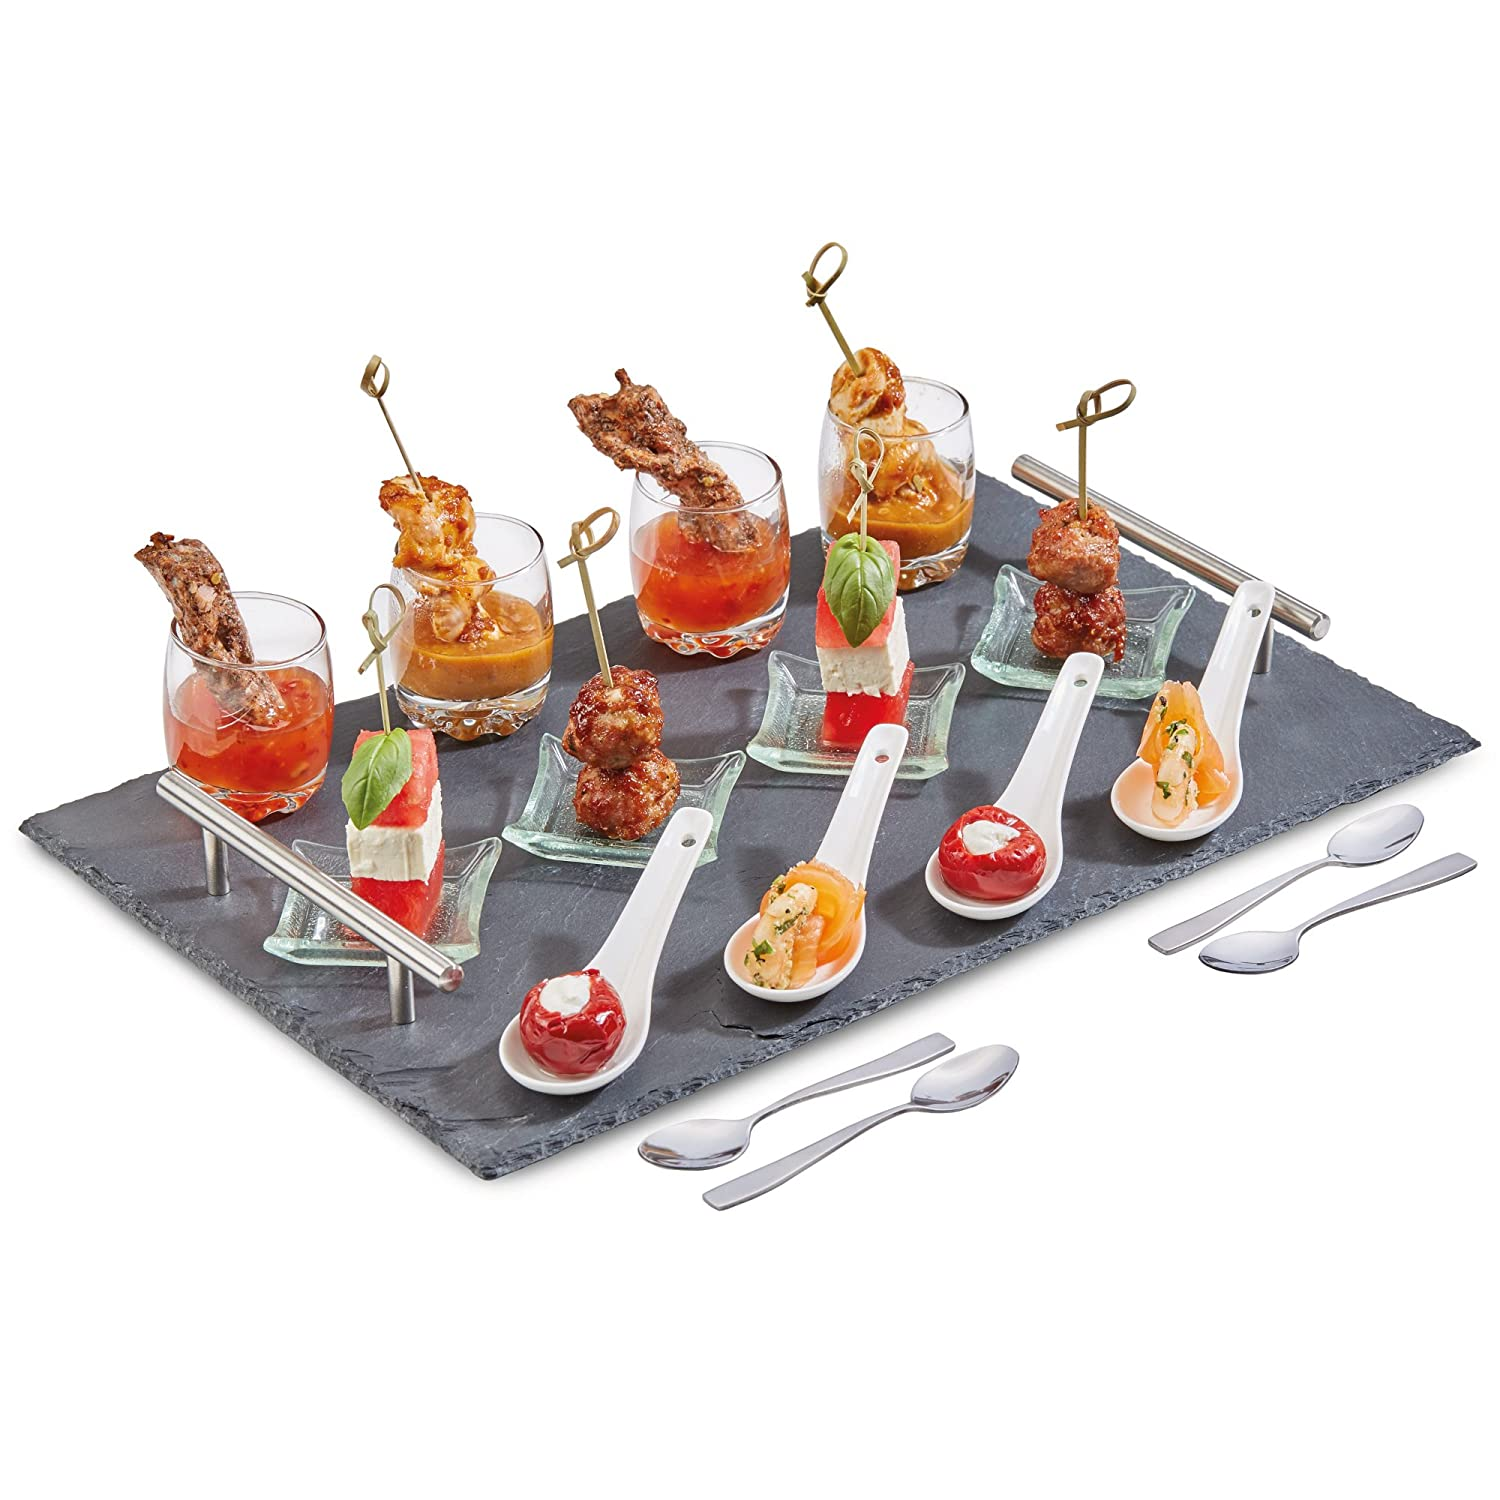 Andrew James Canape Slate Serving Platter Plate with Handles | 17 Piece Parties Set Includes Tray with Dishwasher Safe Plates for Food Tapas Amuse-Bouche Mini Desserts Canapes and Appetisers 5060415766248